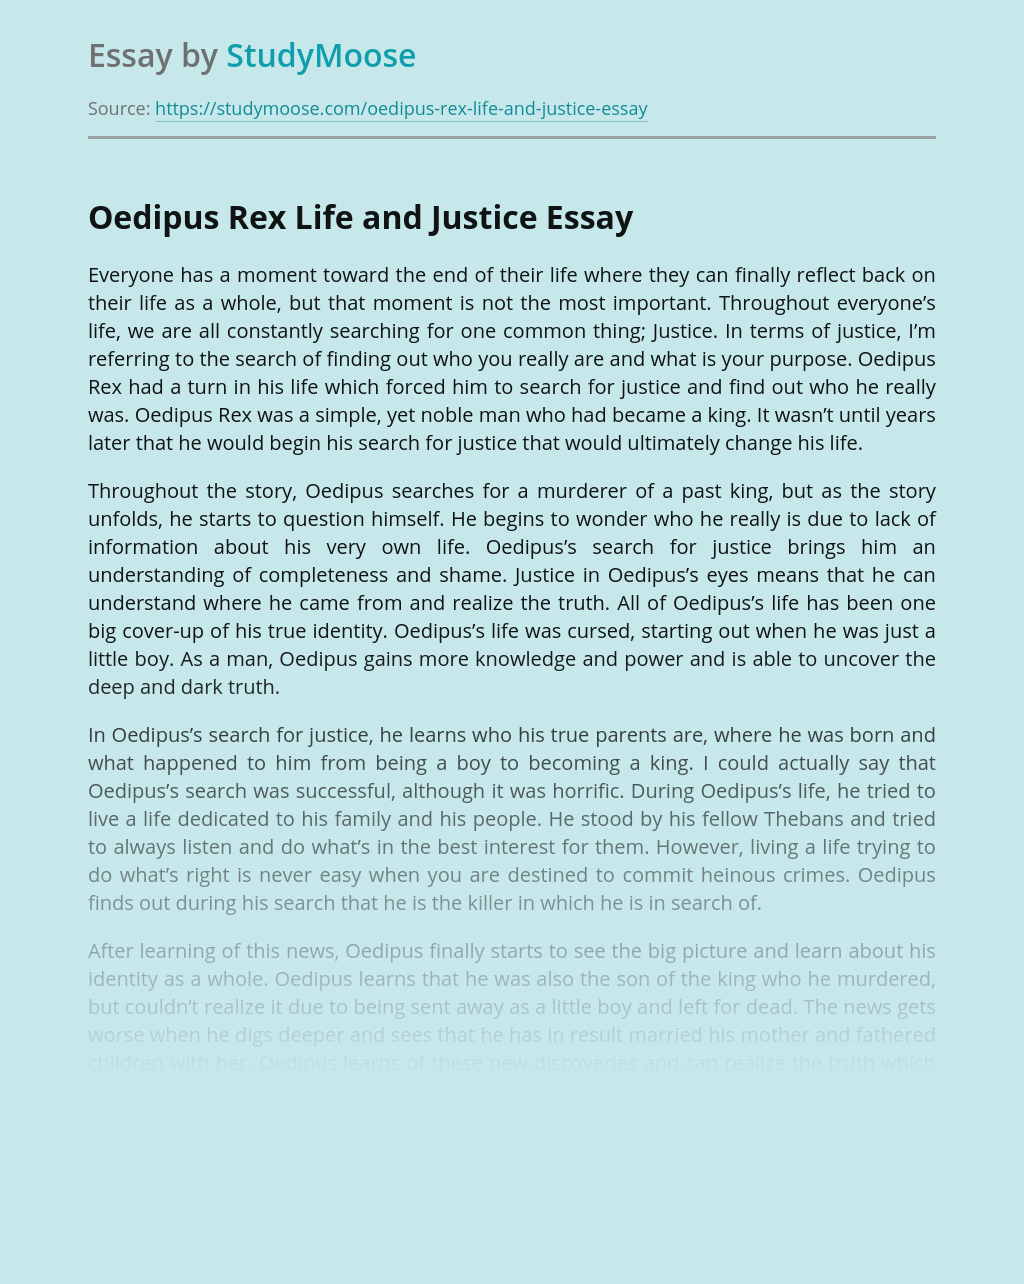 Oedipus Rex Life and Justice